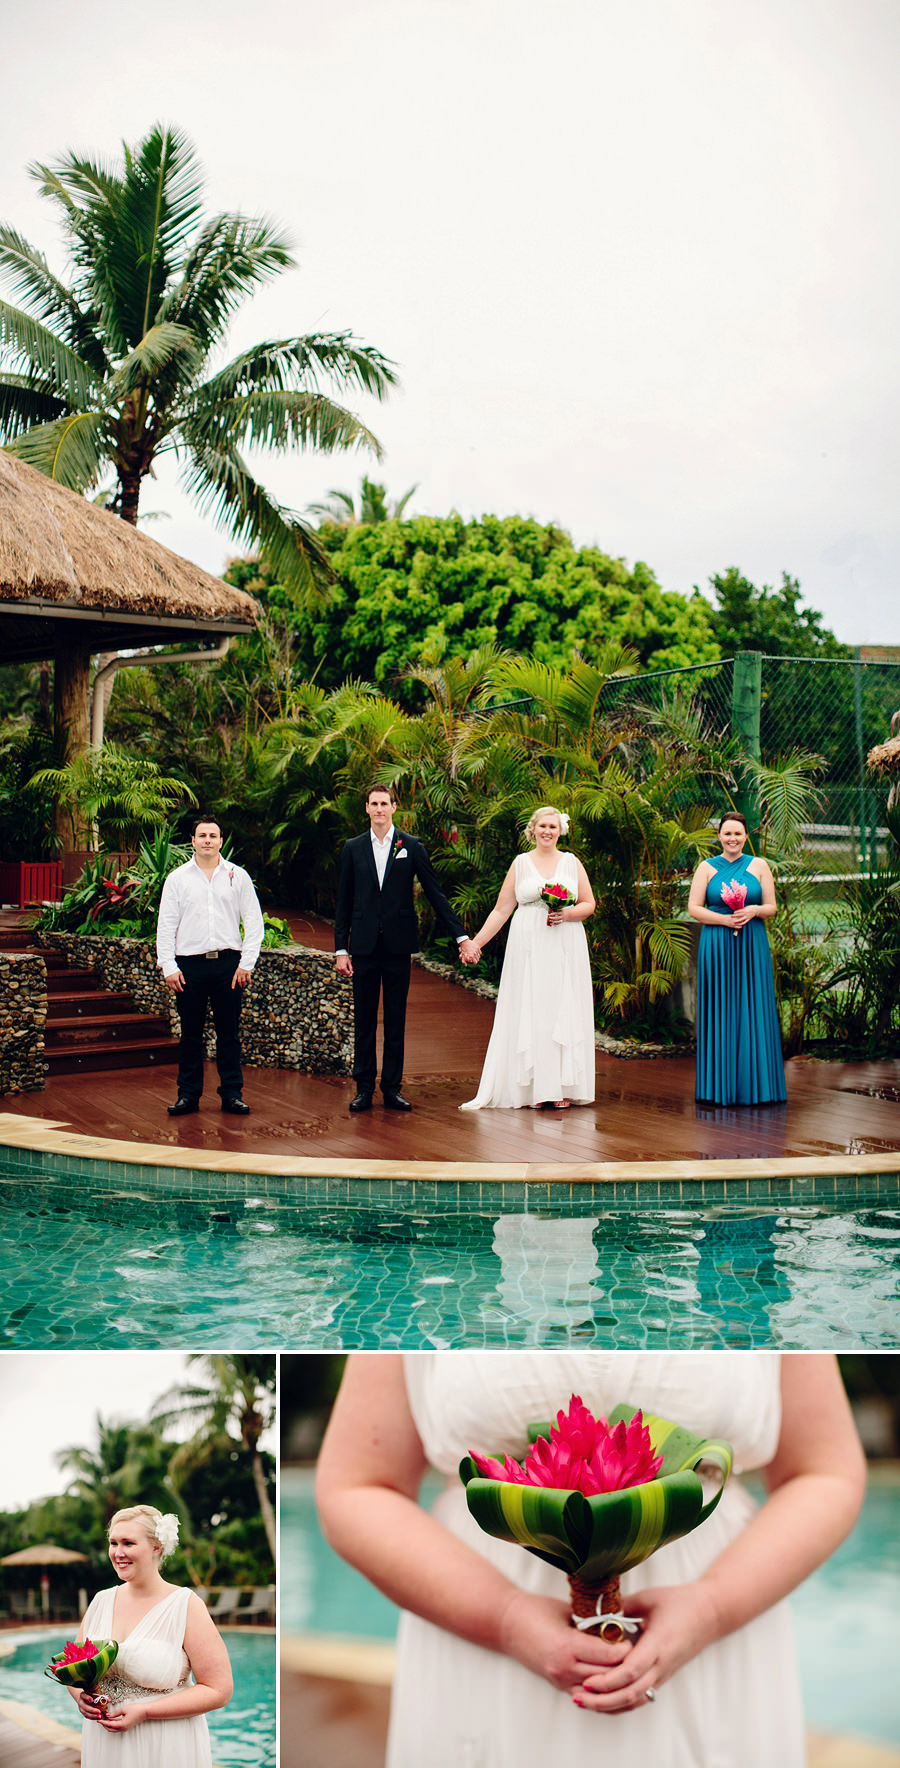 Coral Coast Wedding Photographer: Bridal party